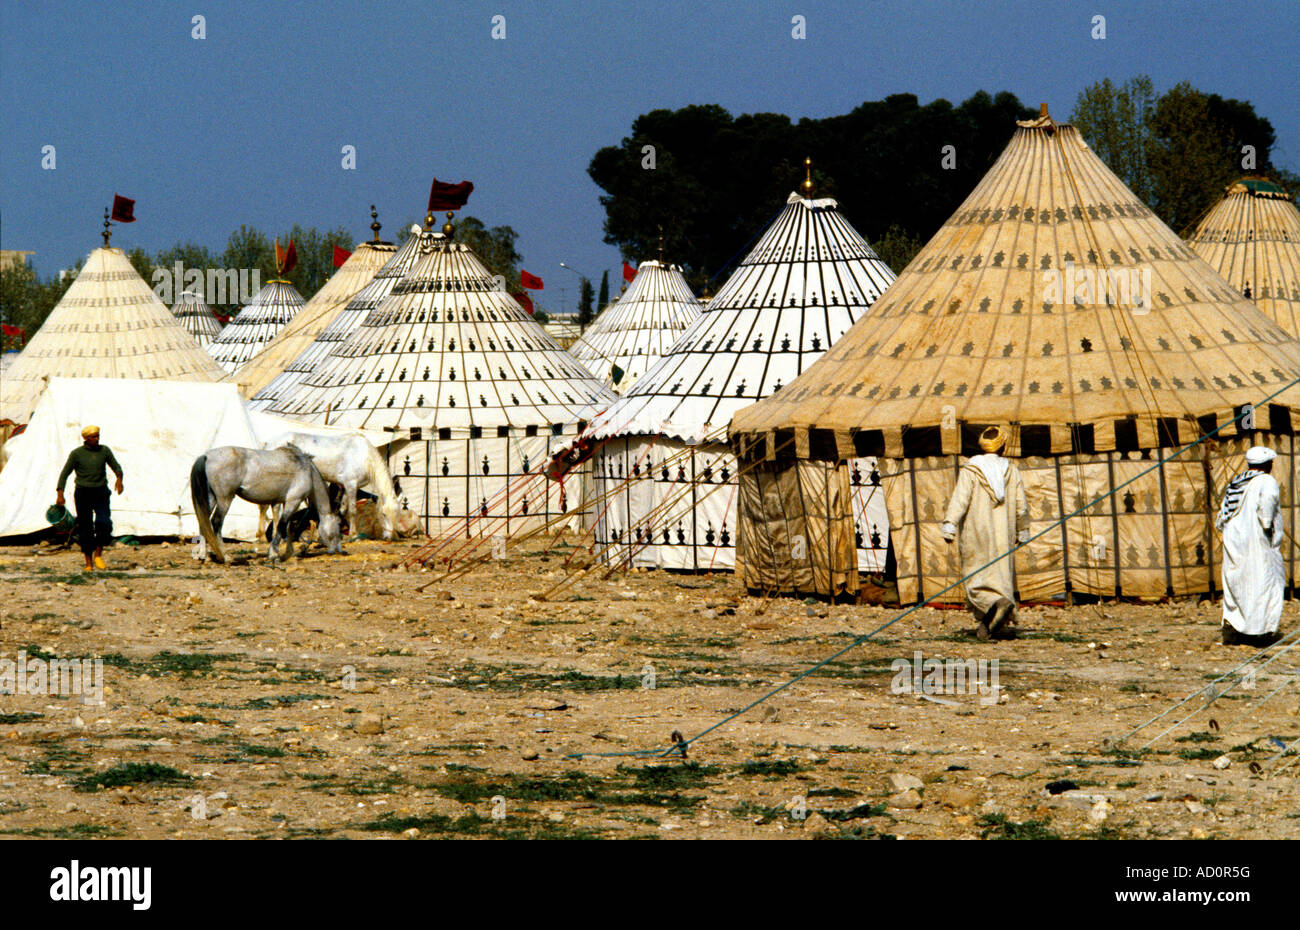 fez jedid morocco berber tent men horse stock photo 13266795 alamy